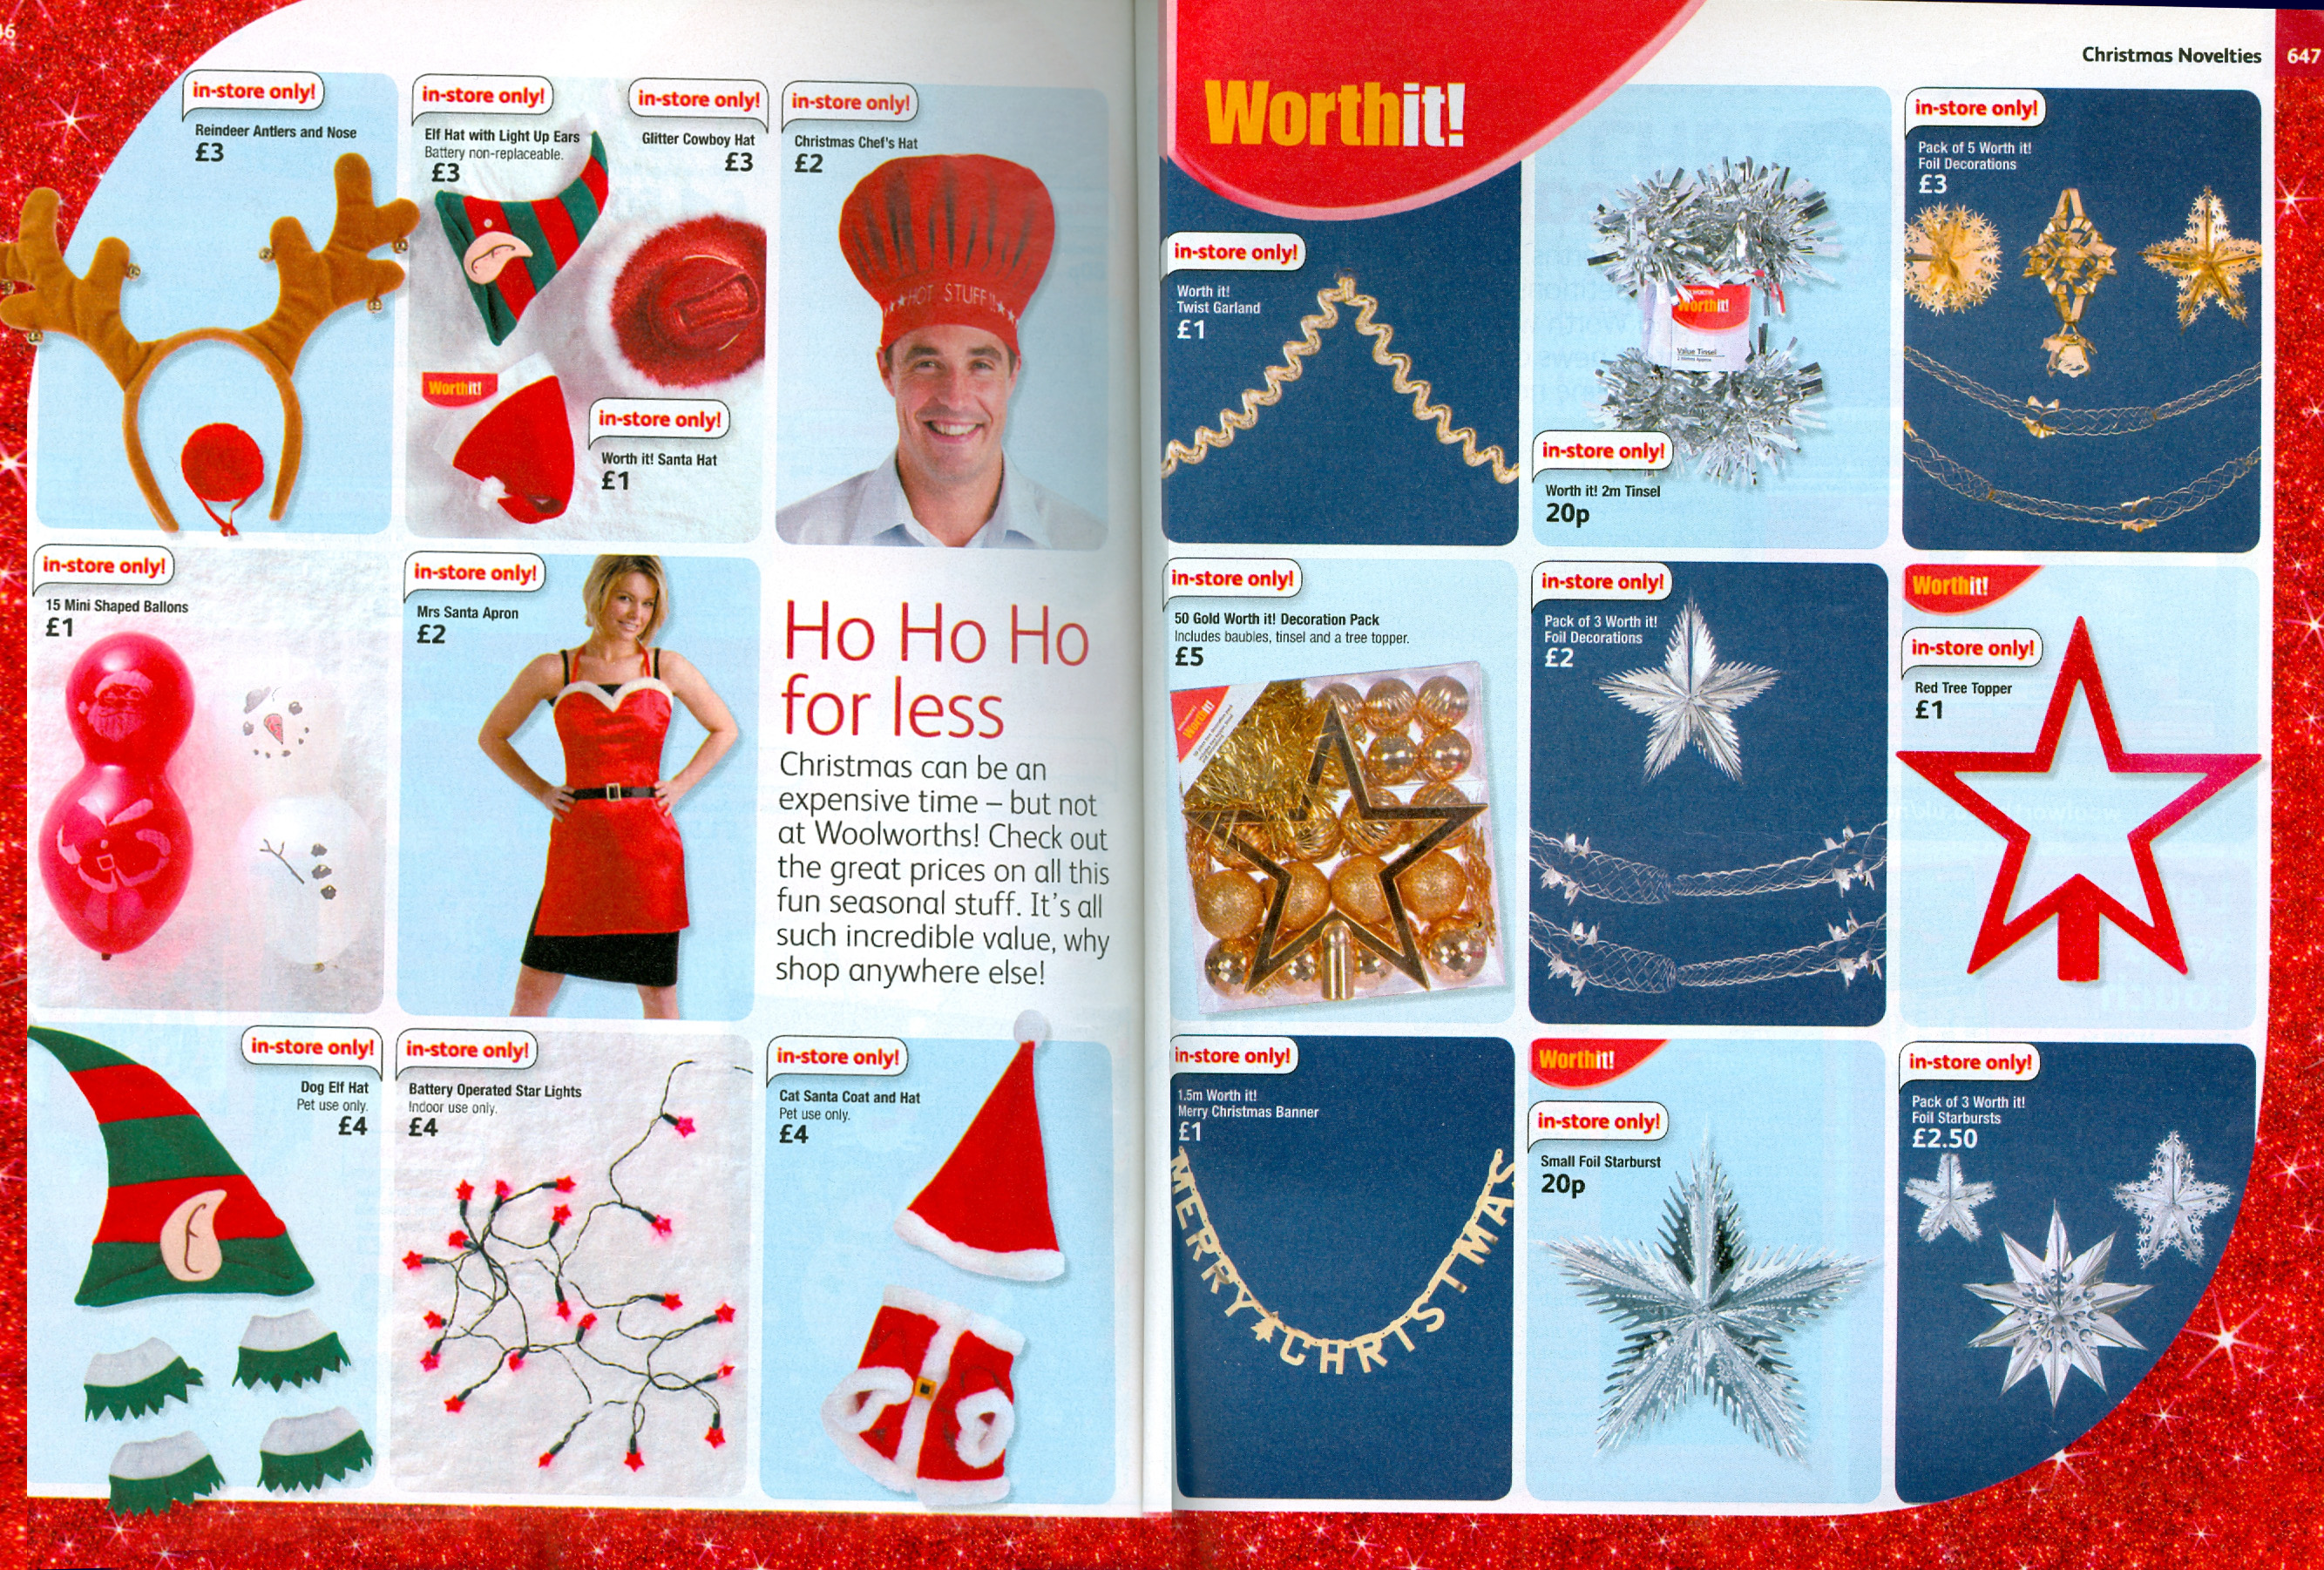 Christmas Decorations in the Big Red Book Catalogue for Winter 2007/8